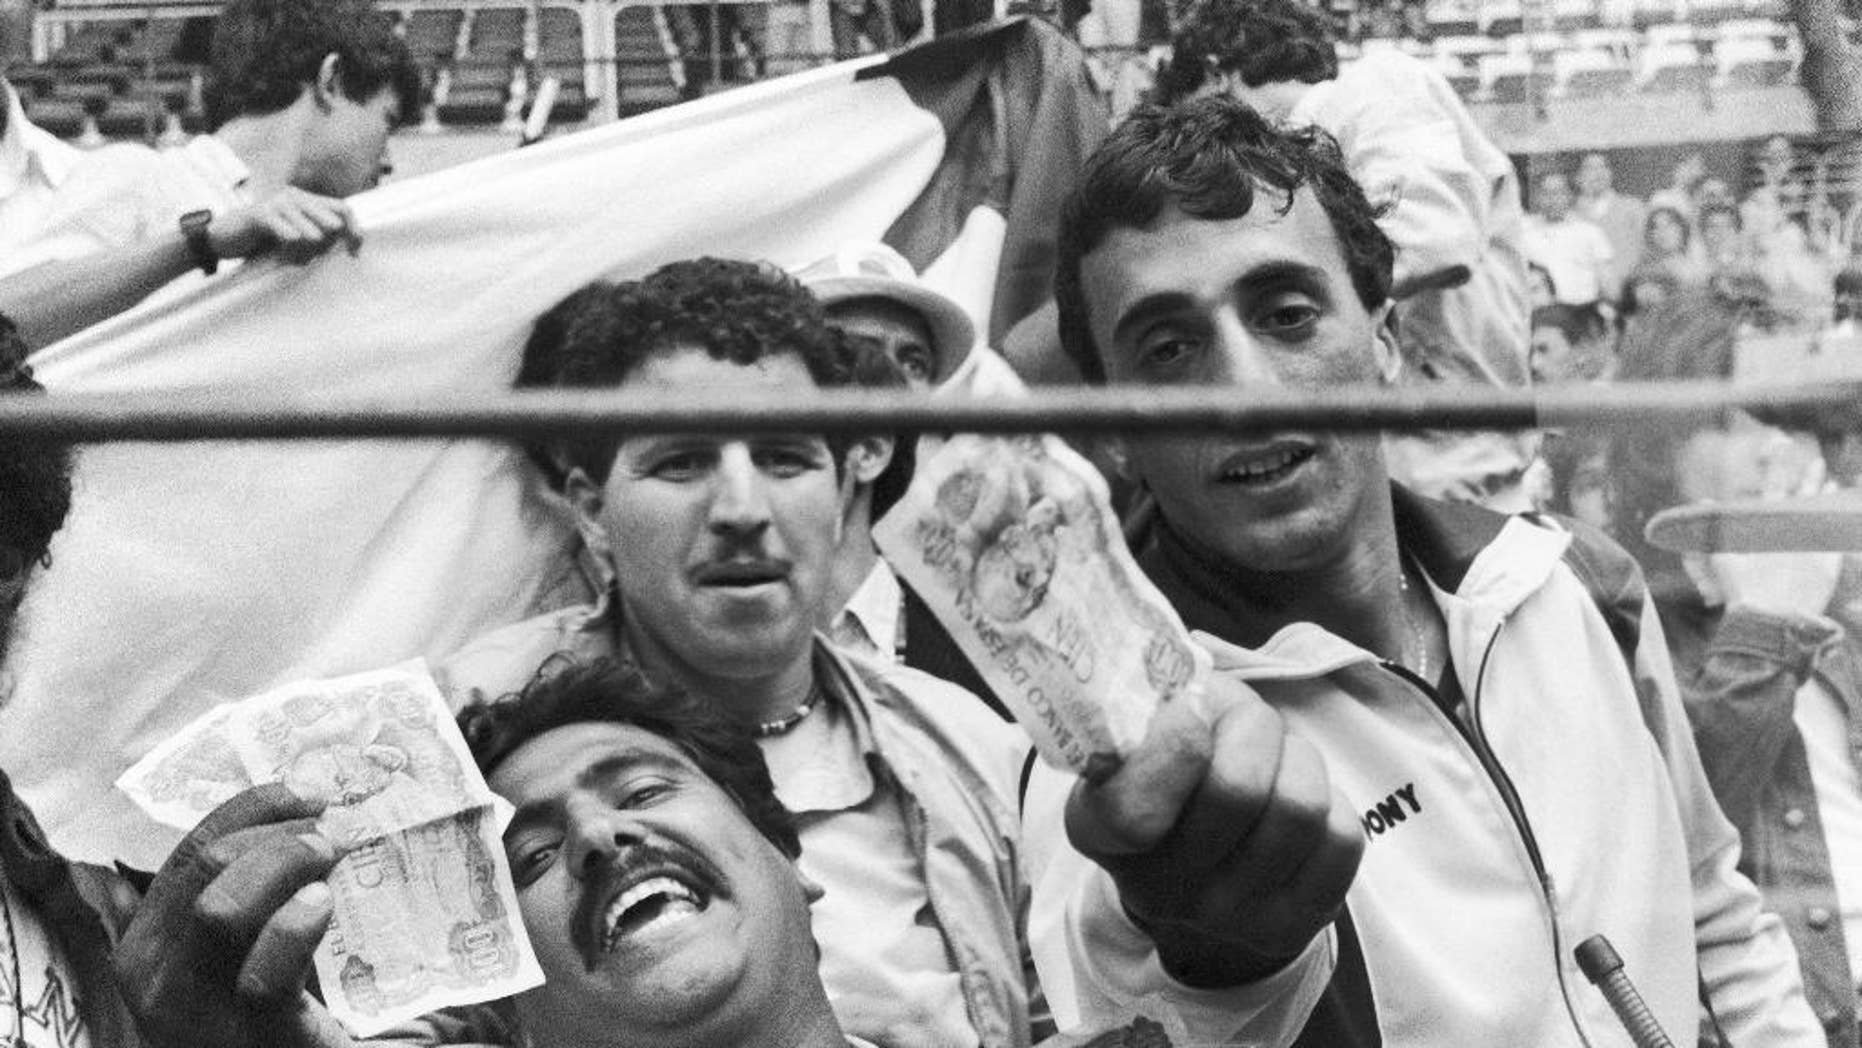 FILE -  In this June 25, 1982 file photo, Algerian soccer supporters show money to photographers, in Gijon, Spain, after the World Cup soccer match between West Germany and Austria. On this day:  West Germany beat Austria 1-0, a result that meant both teams progressed to the next round at Algeria's expense. After West Germany took an early lead, the game ran its bland course to conclusion to the ire of the watching Algerians. (AP Photo/File)